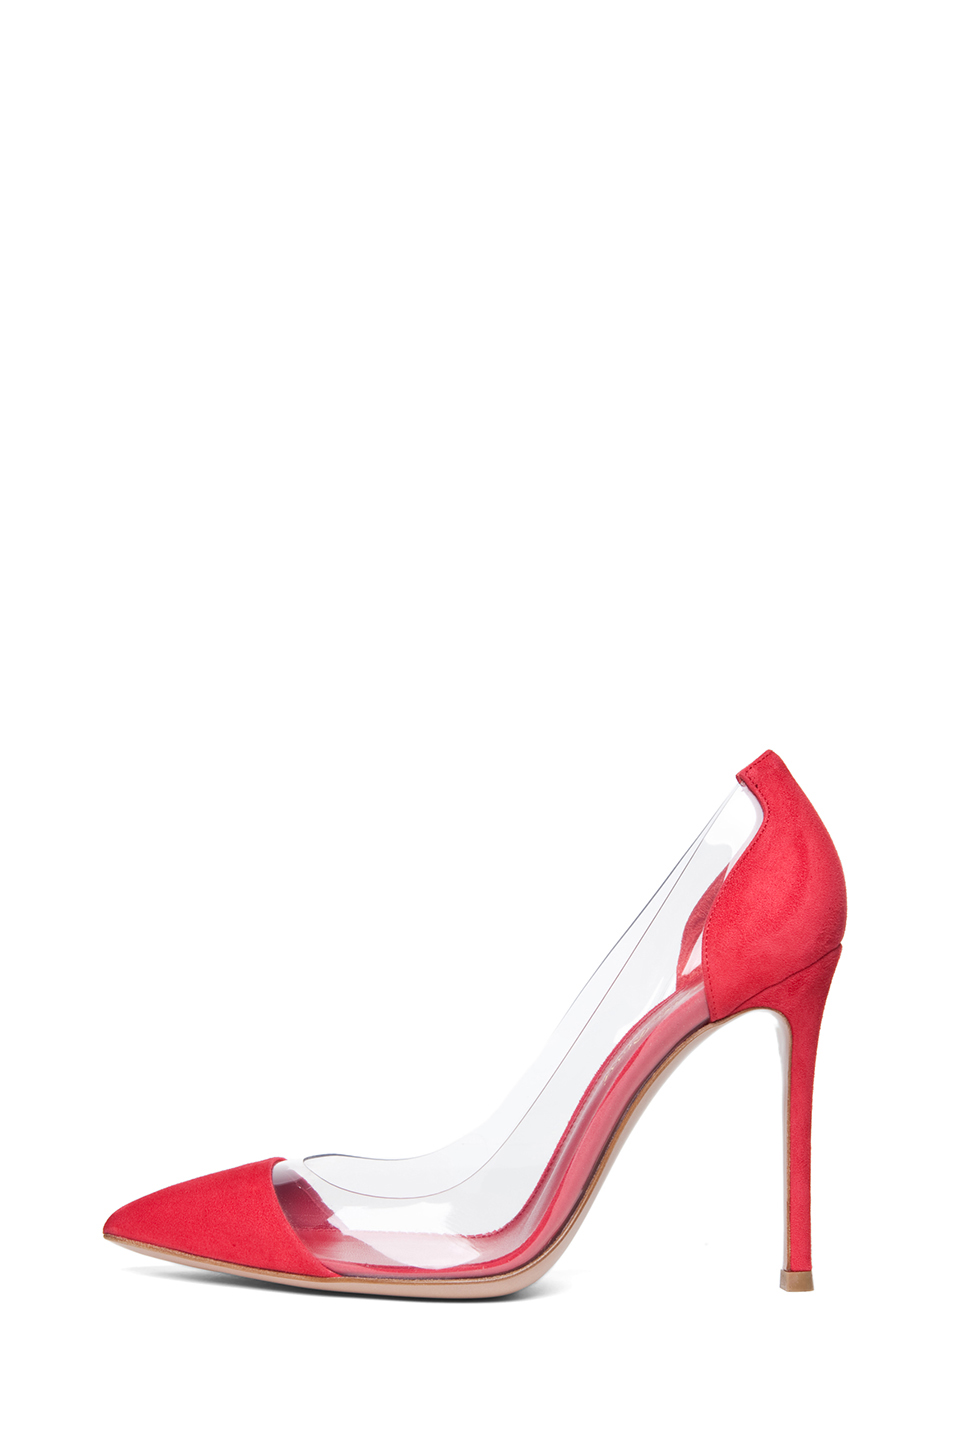 Gianvito Rossi|Suede & Plexy Pumps in Red